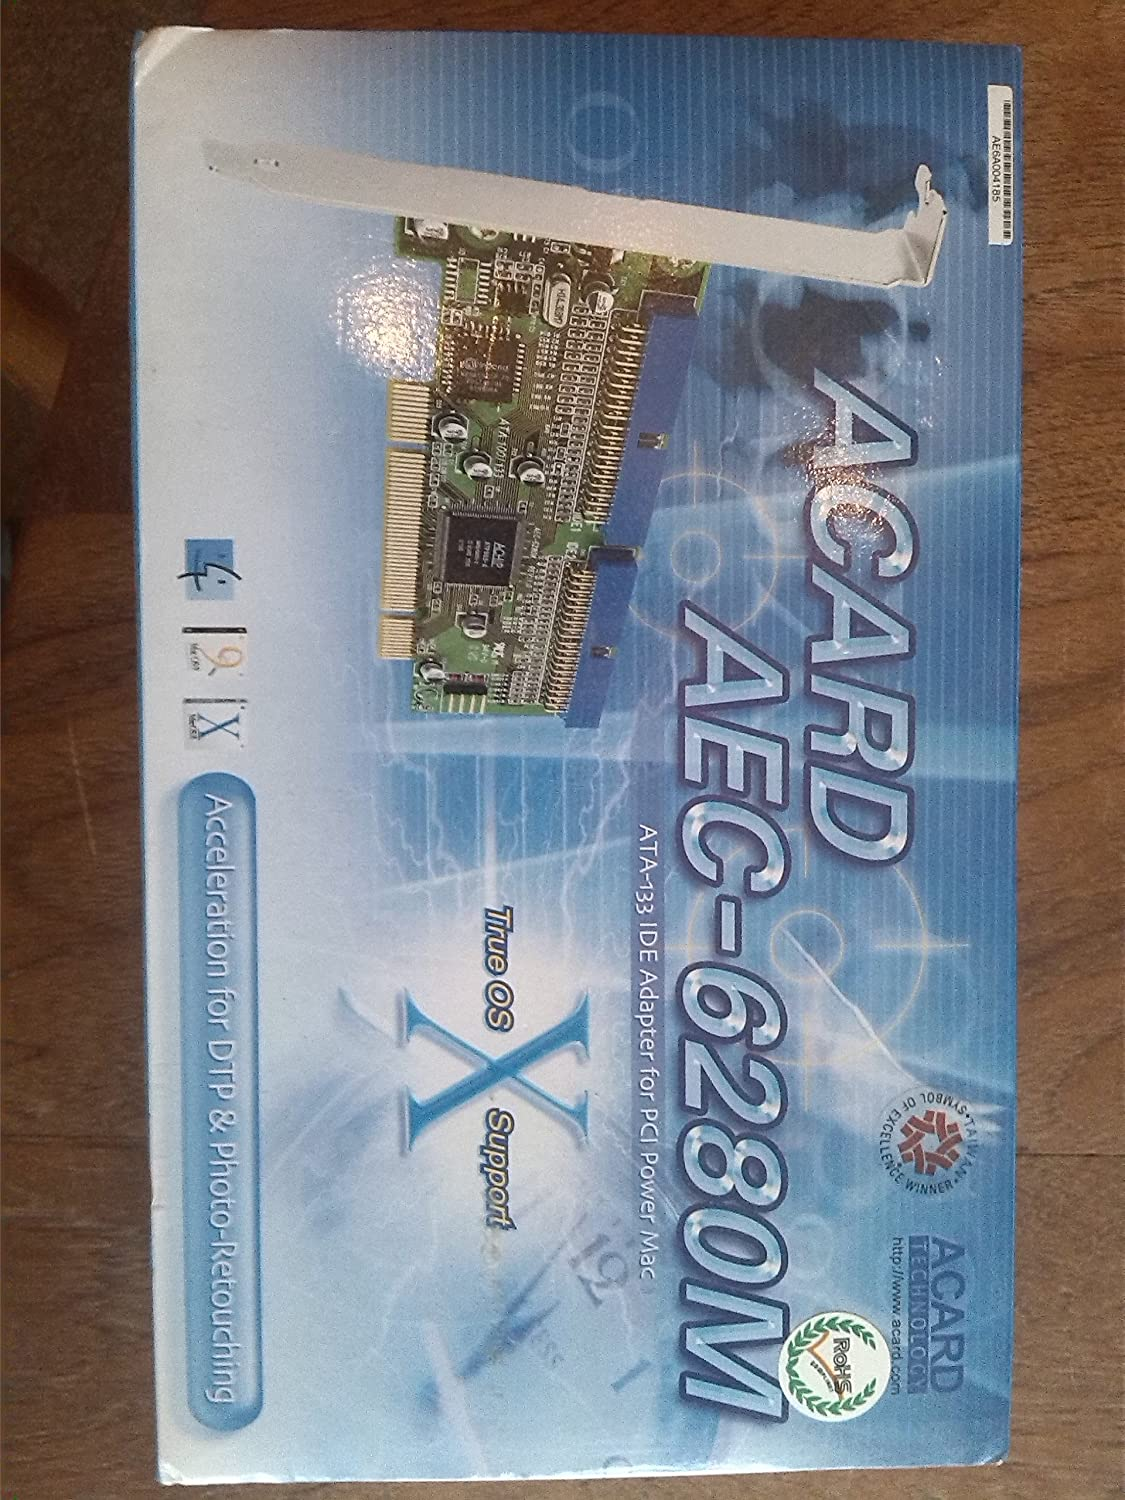 ACARD AEC-6280M WINDOWS 7 X64 DRIVER DOWNLOAD